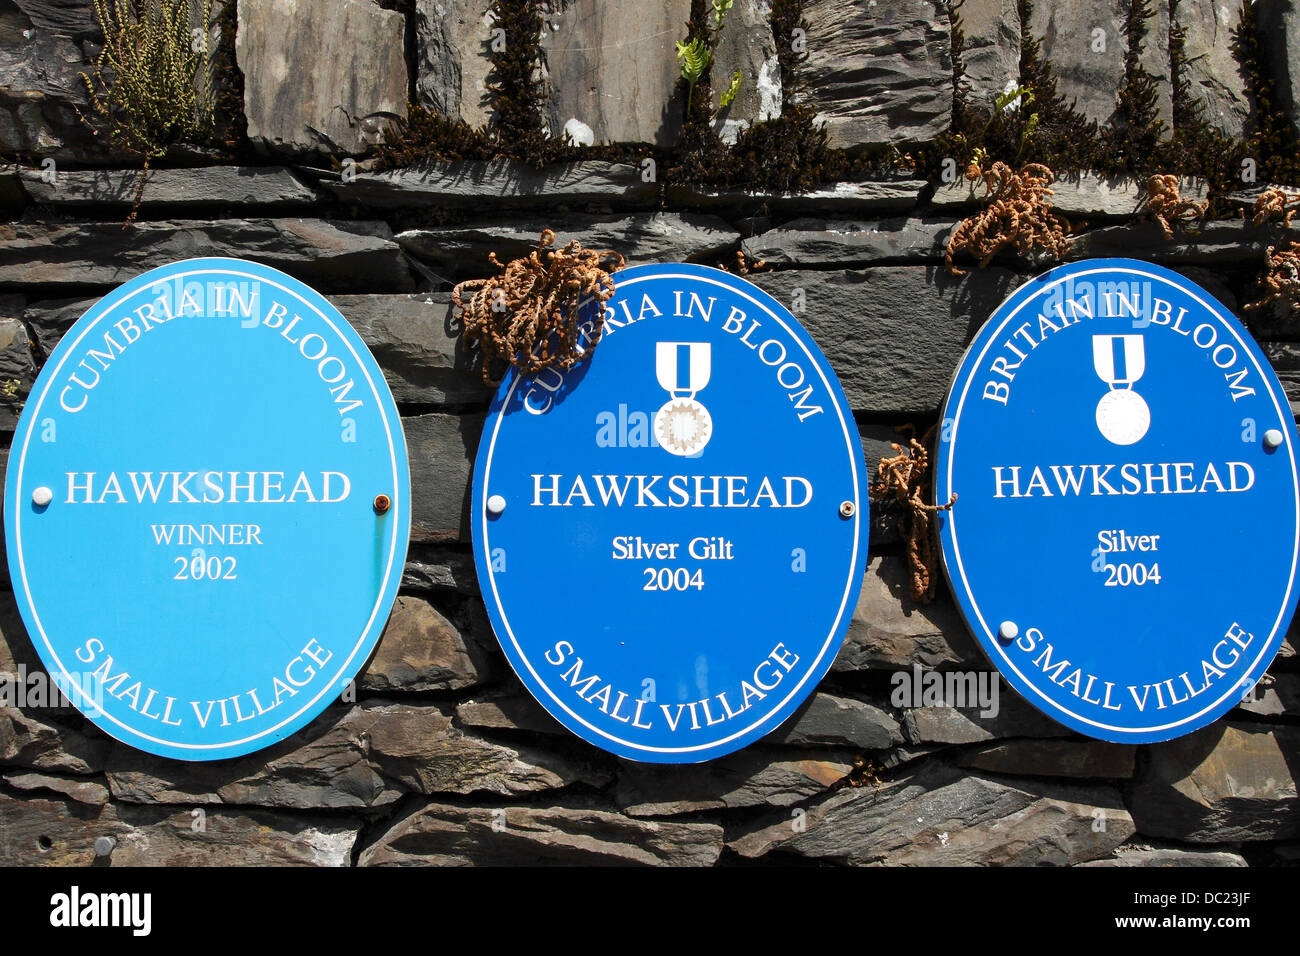 Plaques on a wall in the Beautiful Lakeland village of Hawkshead showing  success in Cumbria  and Britain in bloom - Stock Image